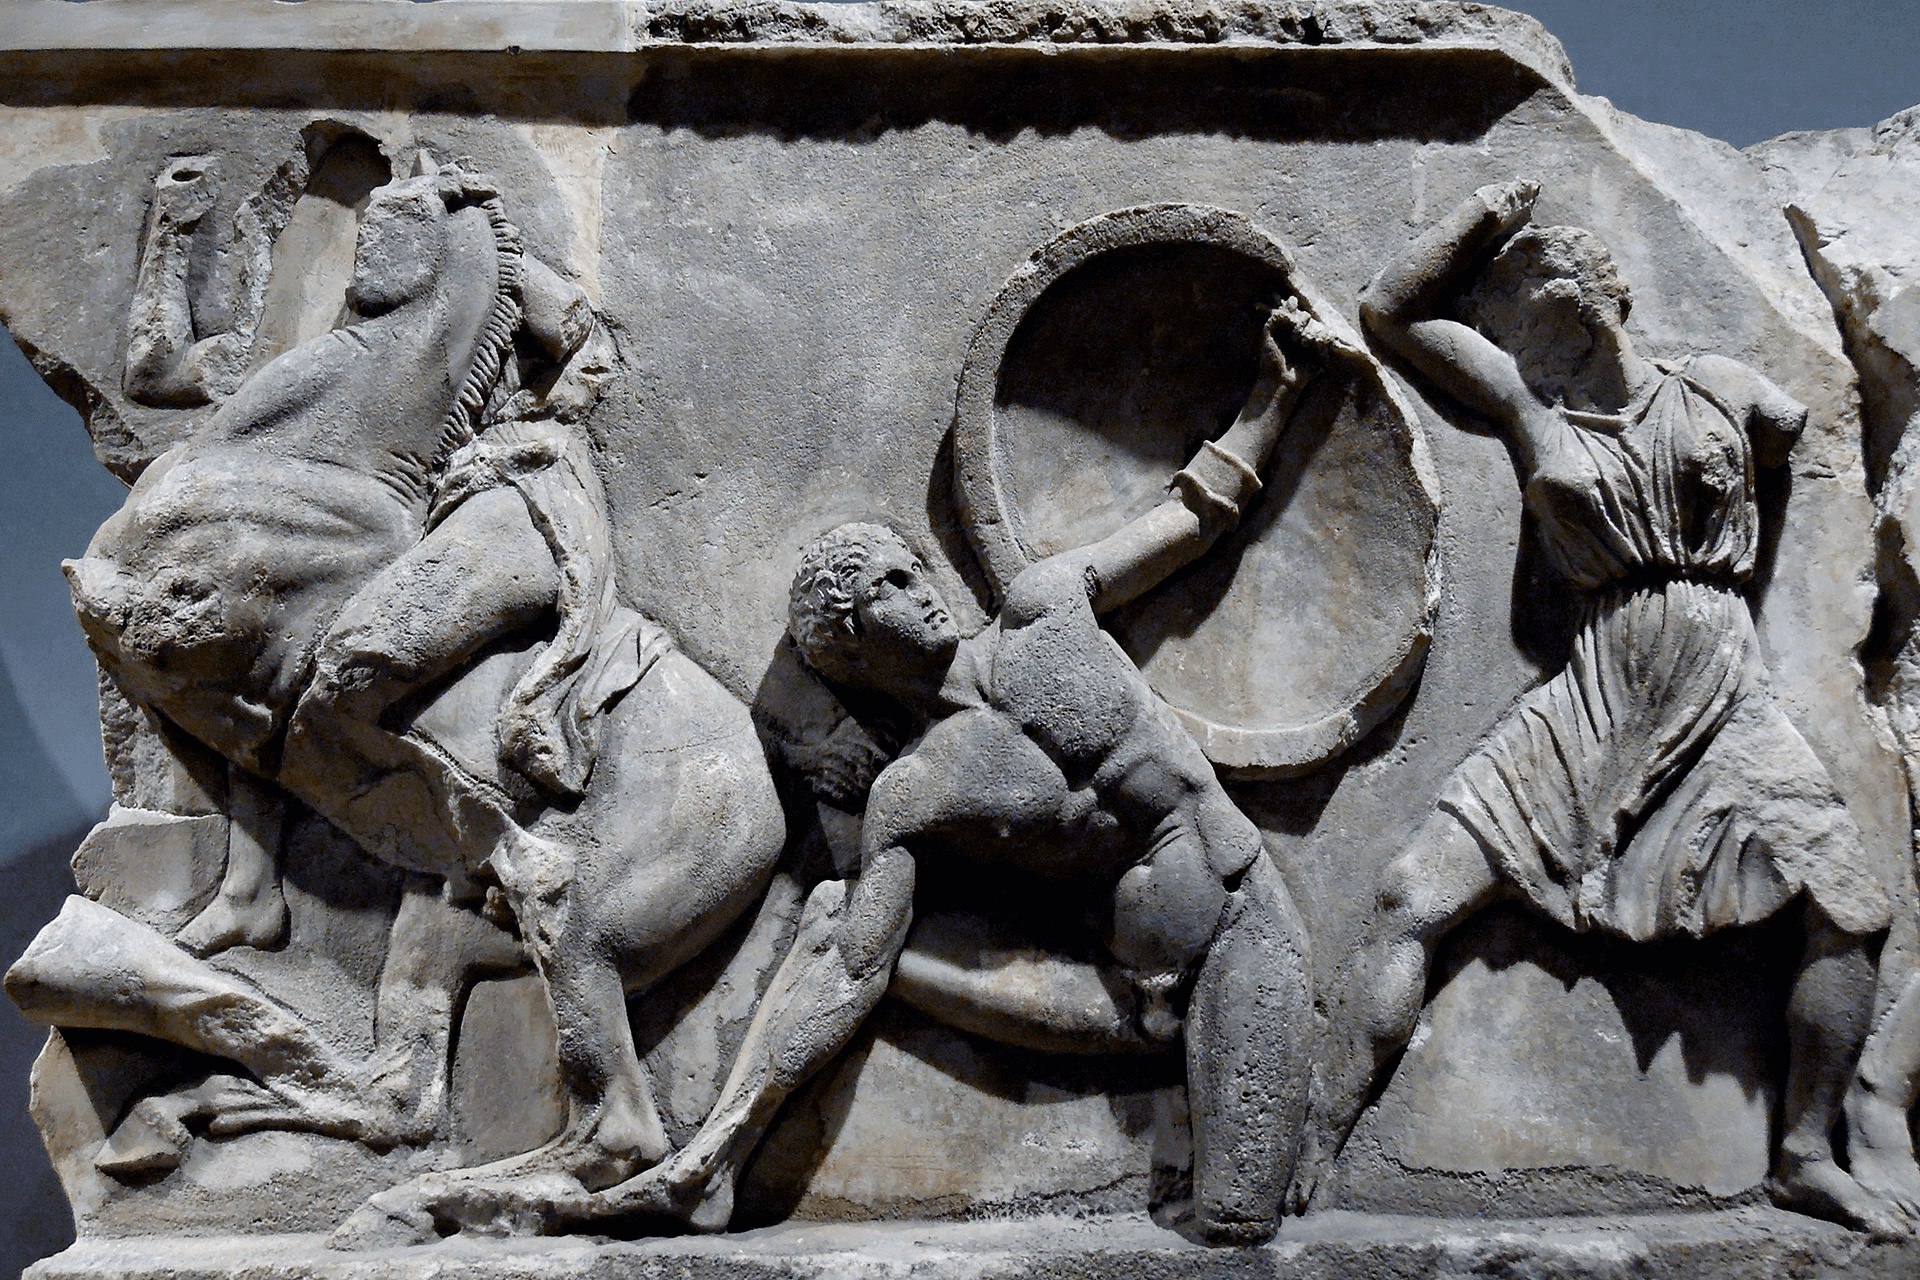 Mausoleum of Halicarnassus - Halicarnassus Wall Relief